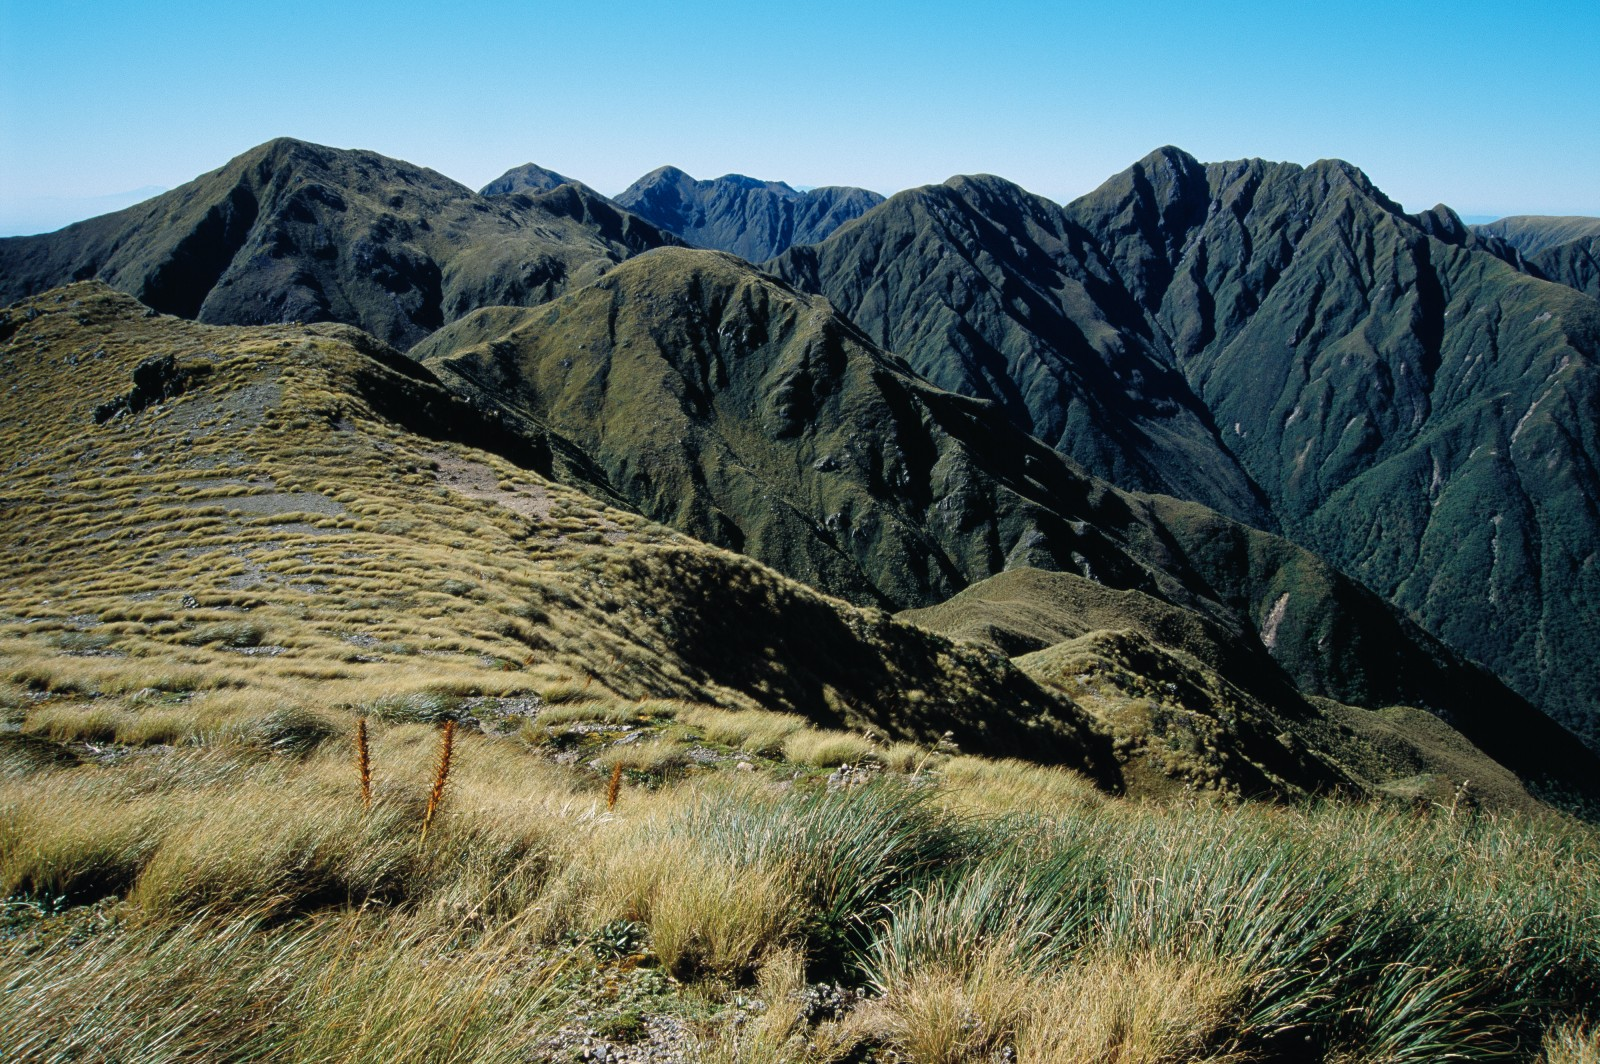 The northern Tararua Range is generally less trammelled than the southern part, offering experienced trampers numerous opportunities. While travel is easy on tussock slopes, off-track travel through extensive bands of sub-alpine scrub can be particularly arduous. This view from near the Waiohine Pinnacles shows several prominent Tararua peaks: (left to right) Arête, Dundas, Pukemoremore, The Twins and Bannister.